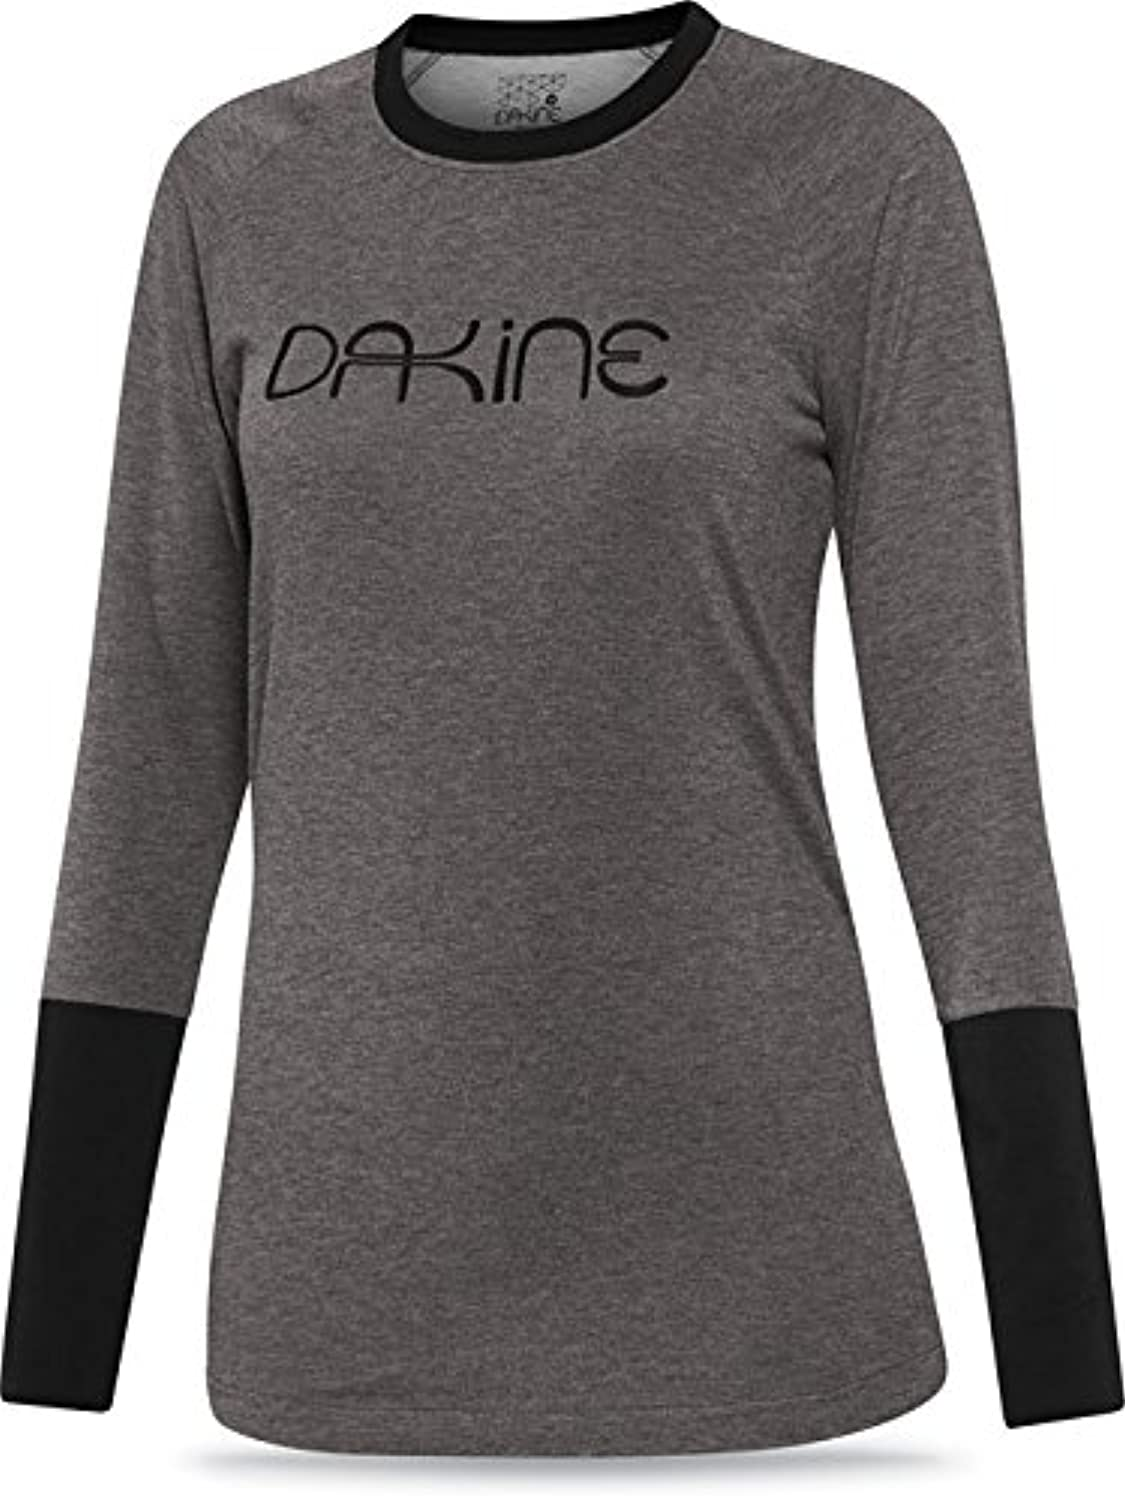 Dakine Women's Astra Long Sleeve Crew Neck TShirt